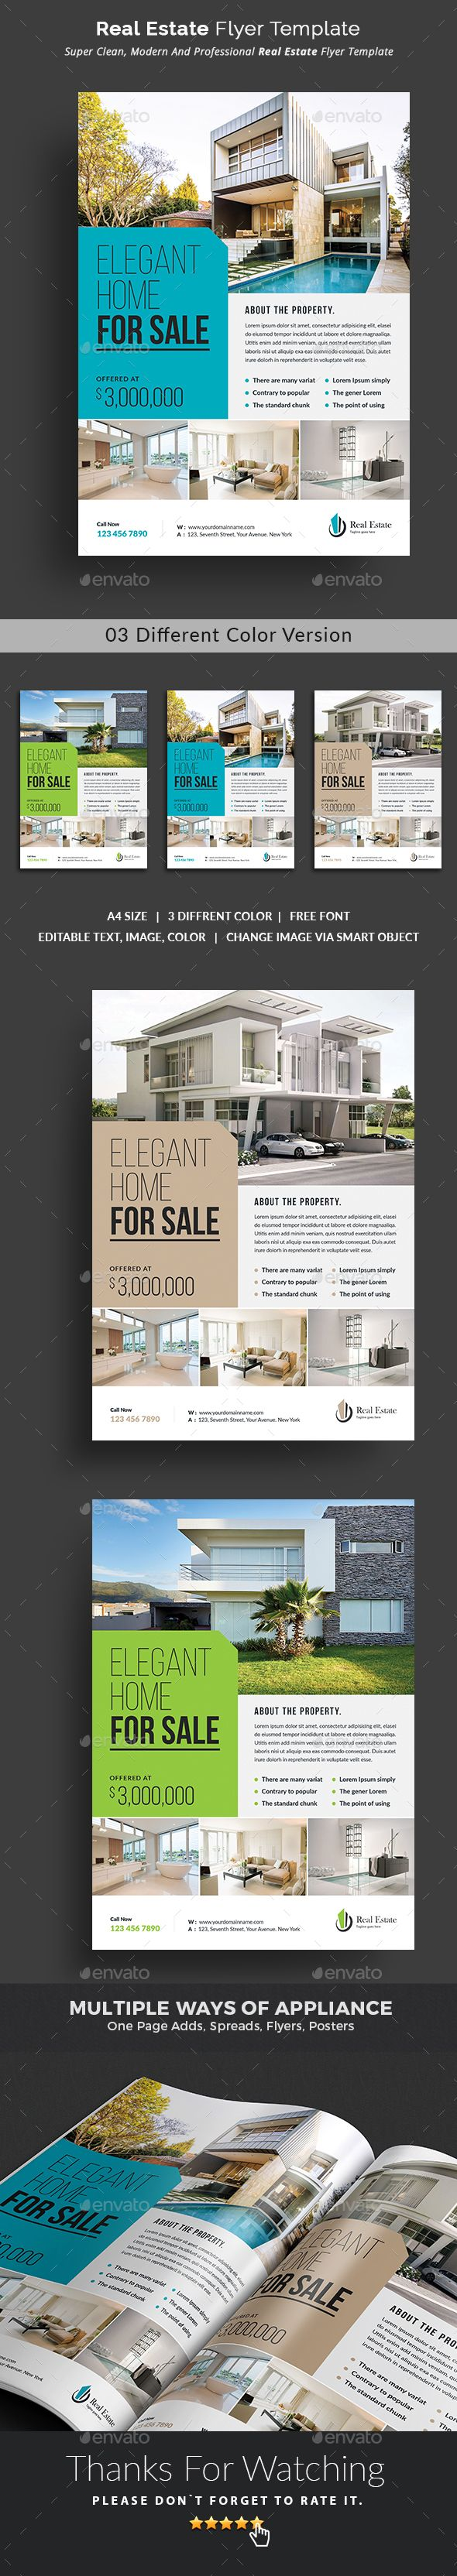 best 25 property for sale ideas on pinterest